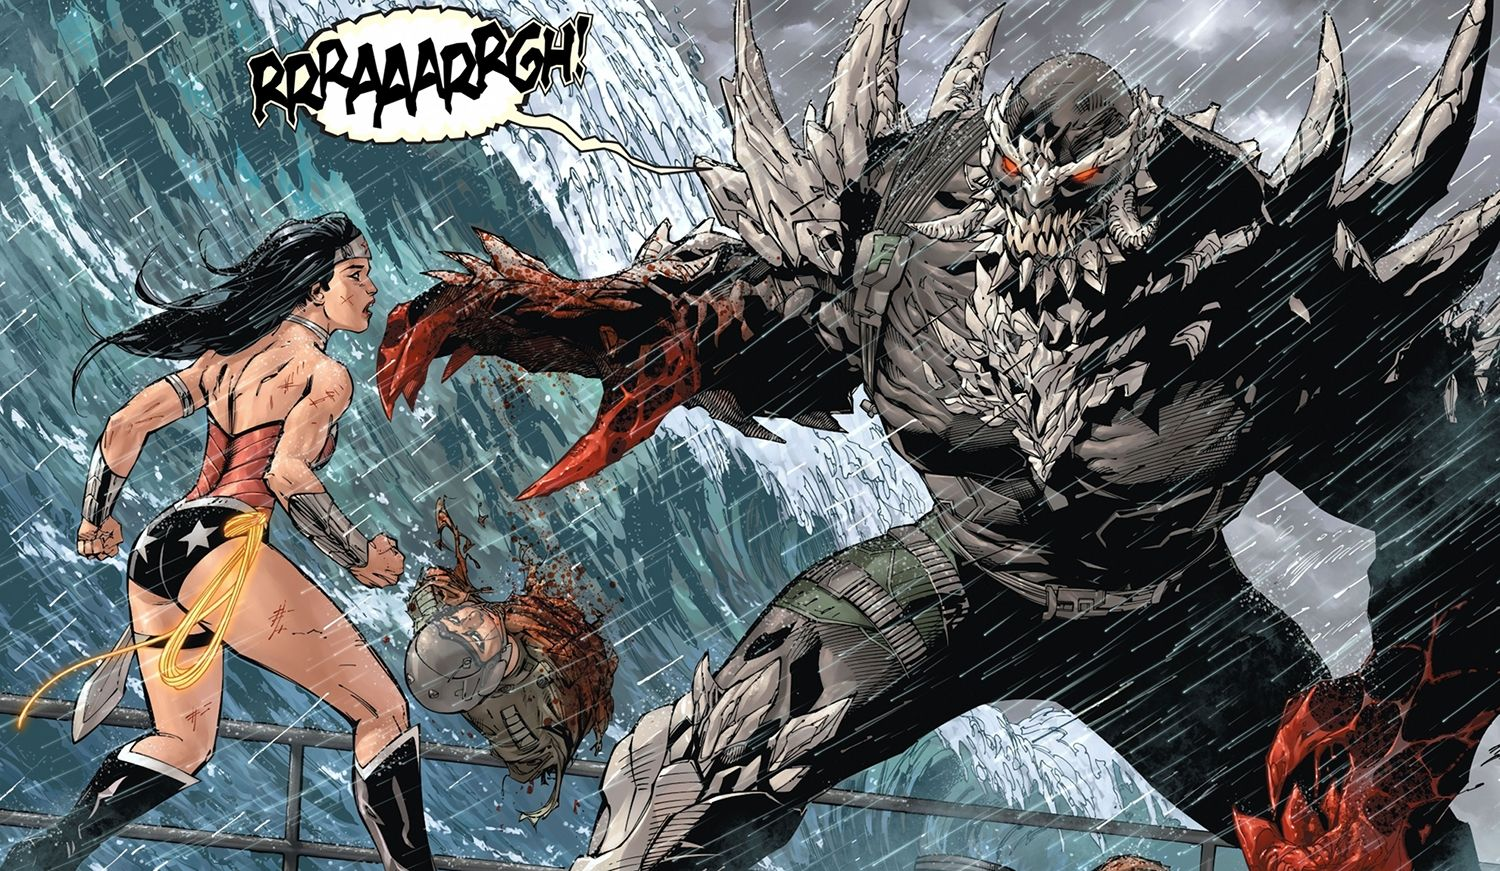 Batman V. Superman Rumored To Have Wonder Woman And Doomsday Fight